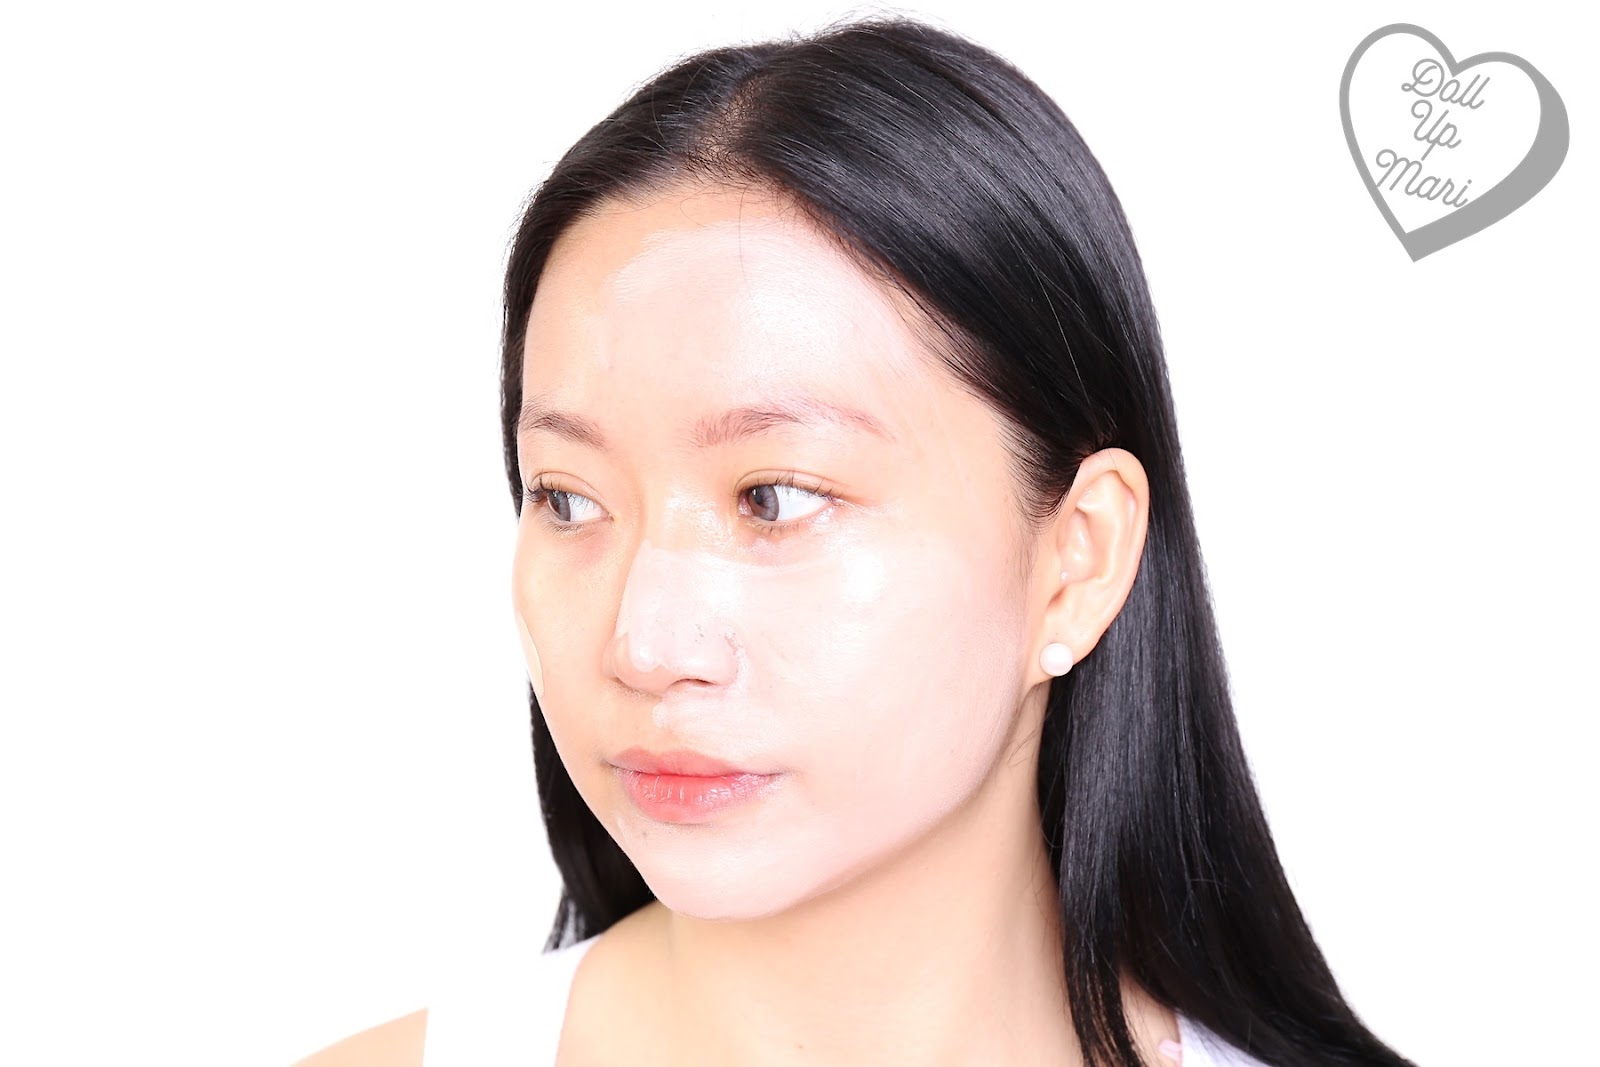 Wearing L'Oréal Paris Infallible 24HR Fresh Wear Liquid Foundation SPF25PA+++ in shade Ivory during blending